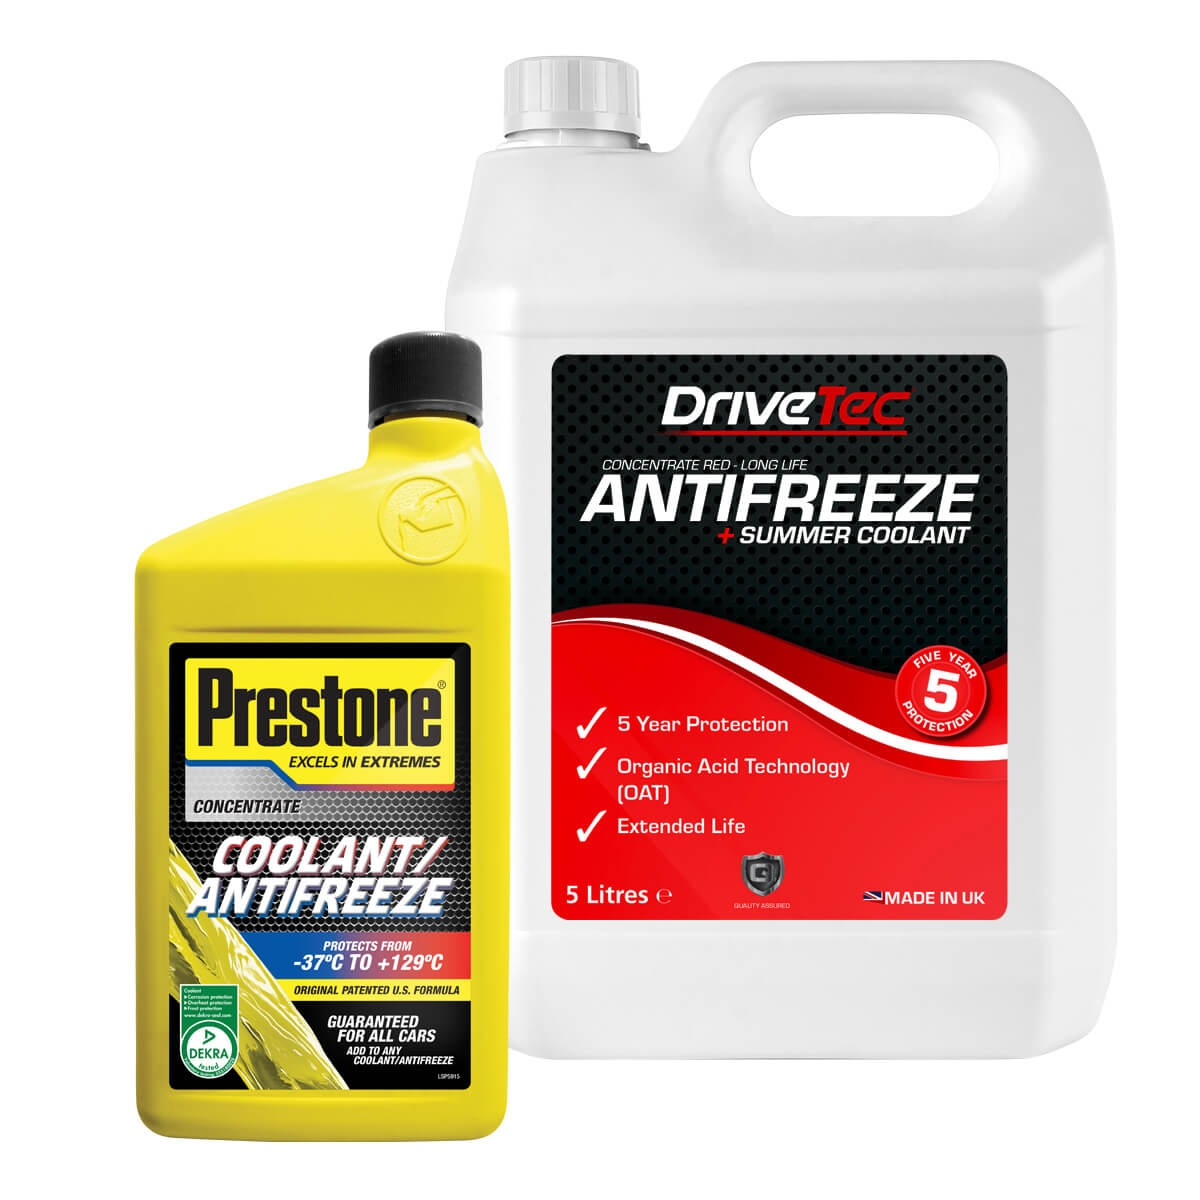 DS DS5 Antifreeze & Coolant